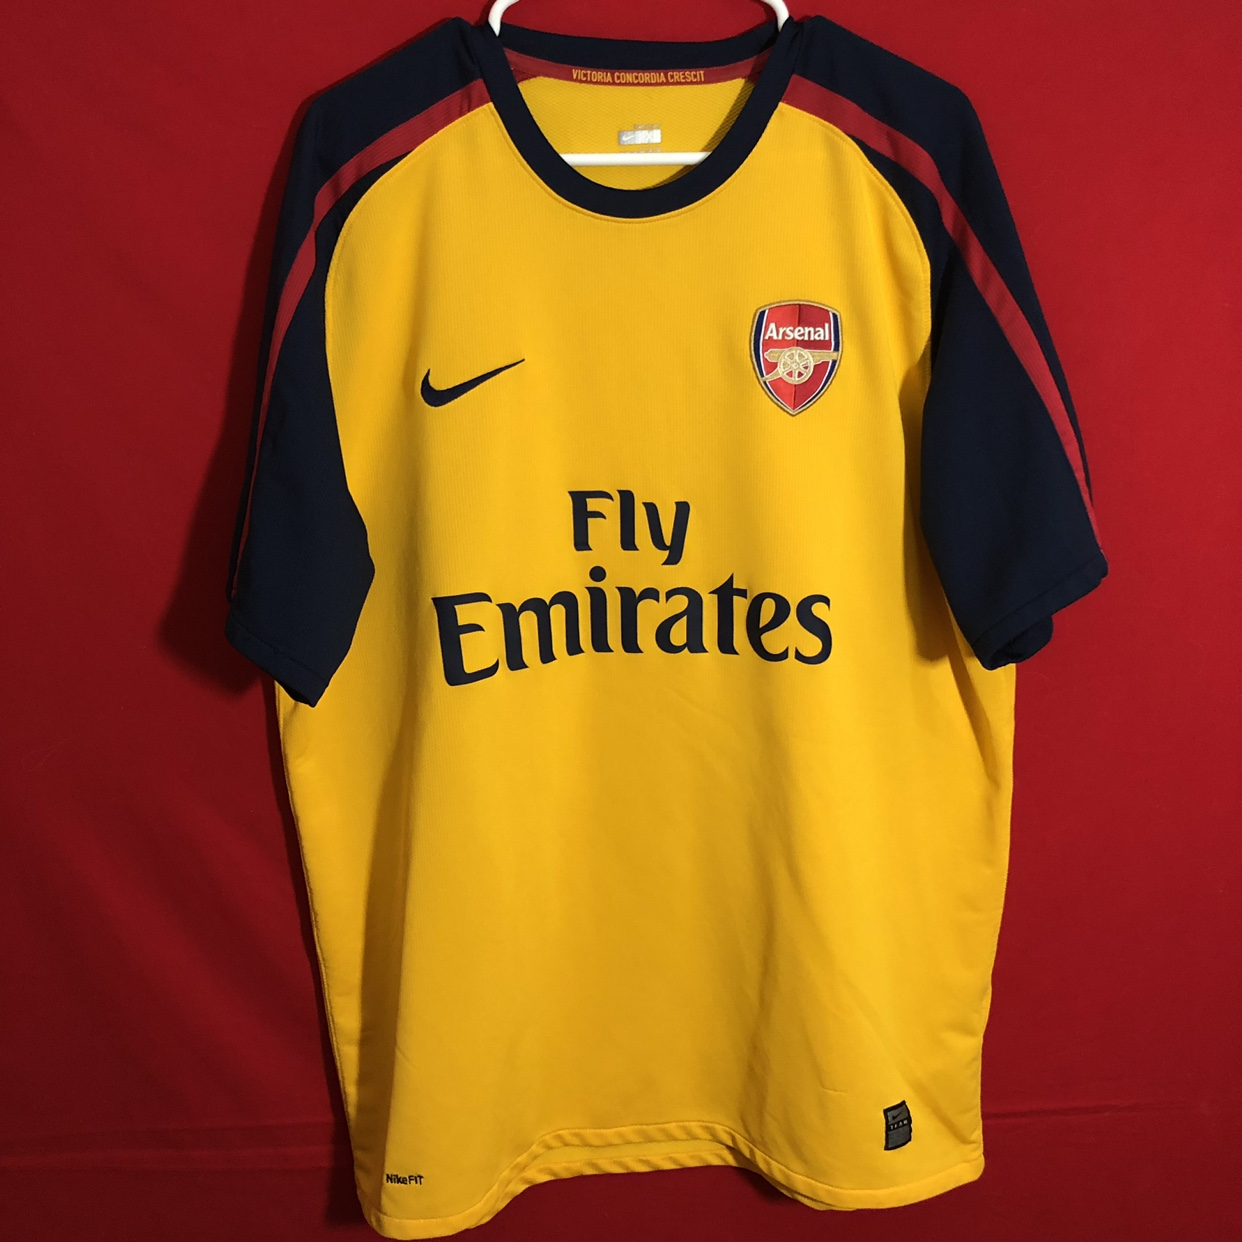 hot sale online f0e28 d980b Yellow Nike arsenal soccer jersey Awesome condition... - Depop